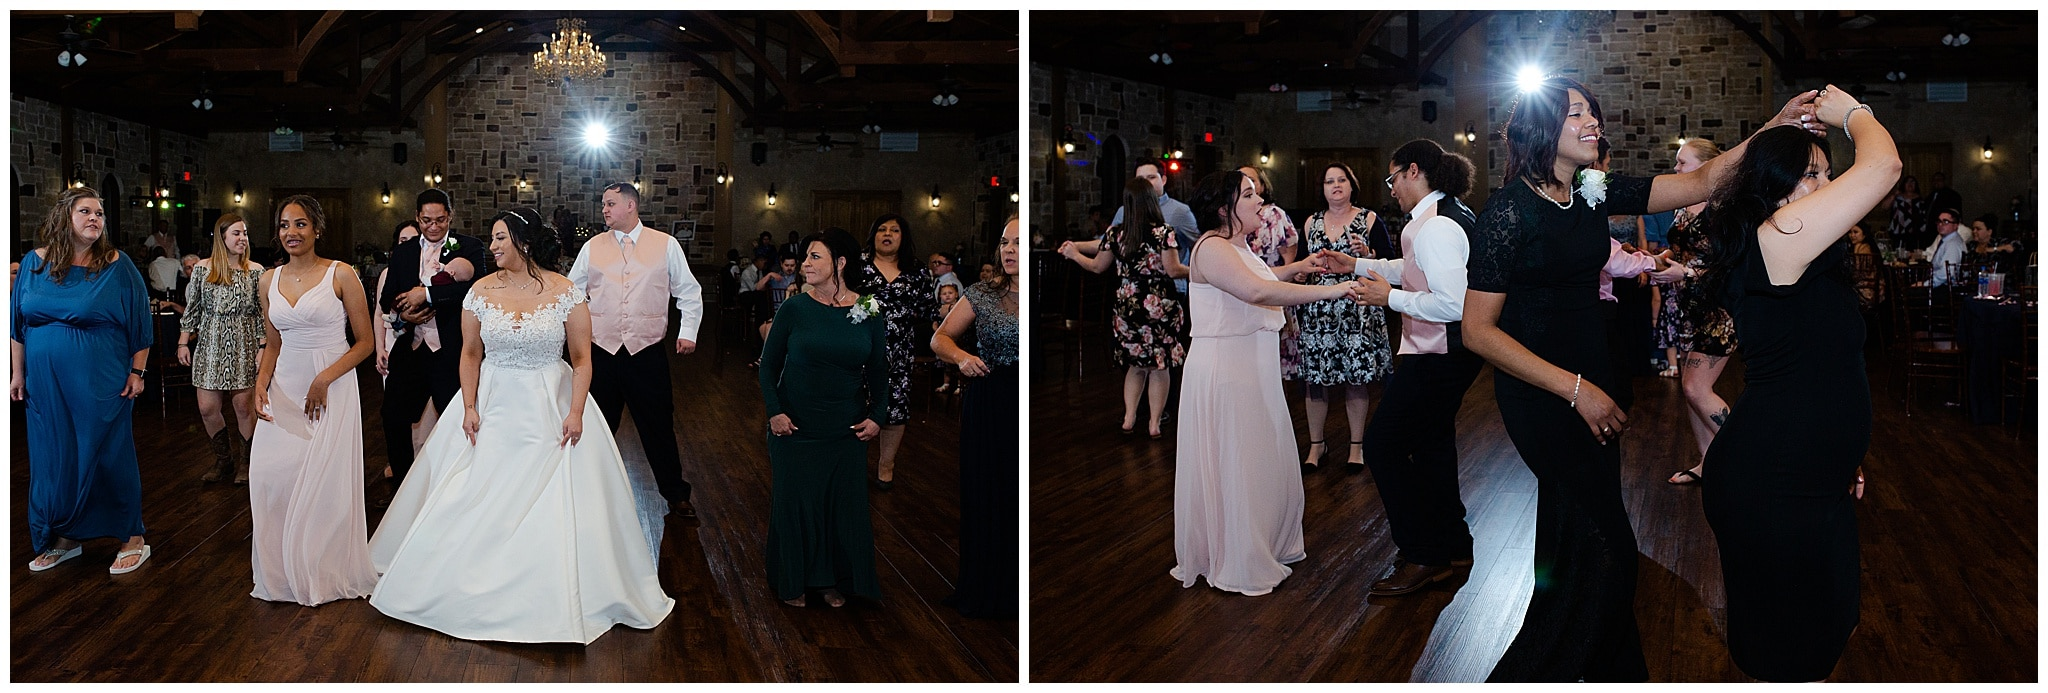 wedding dancing at Bridal Oaks in Cypress Texas by Houston wedding photographer Swish and Click Photography